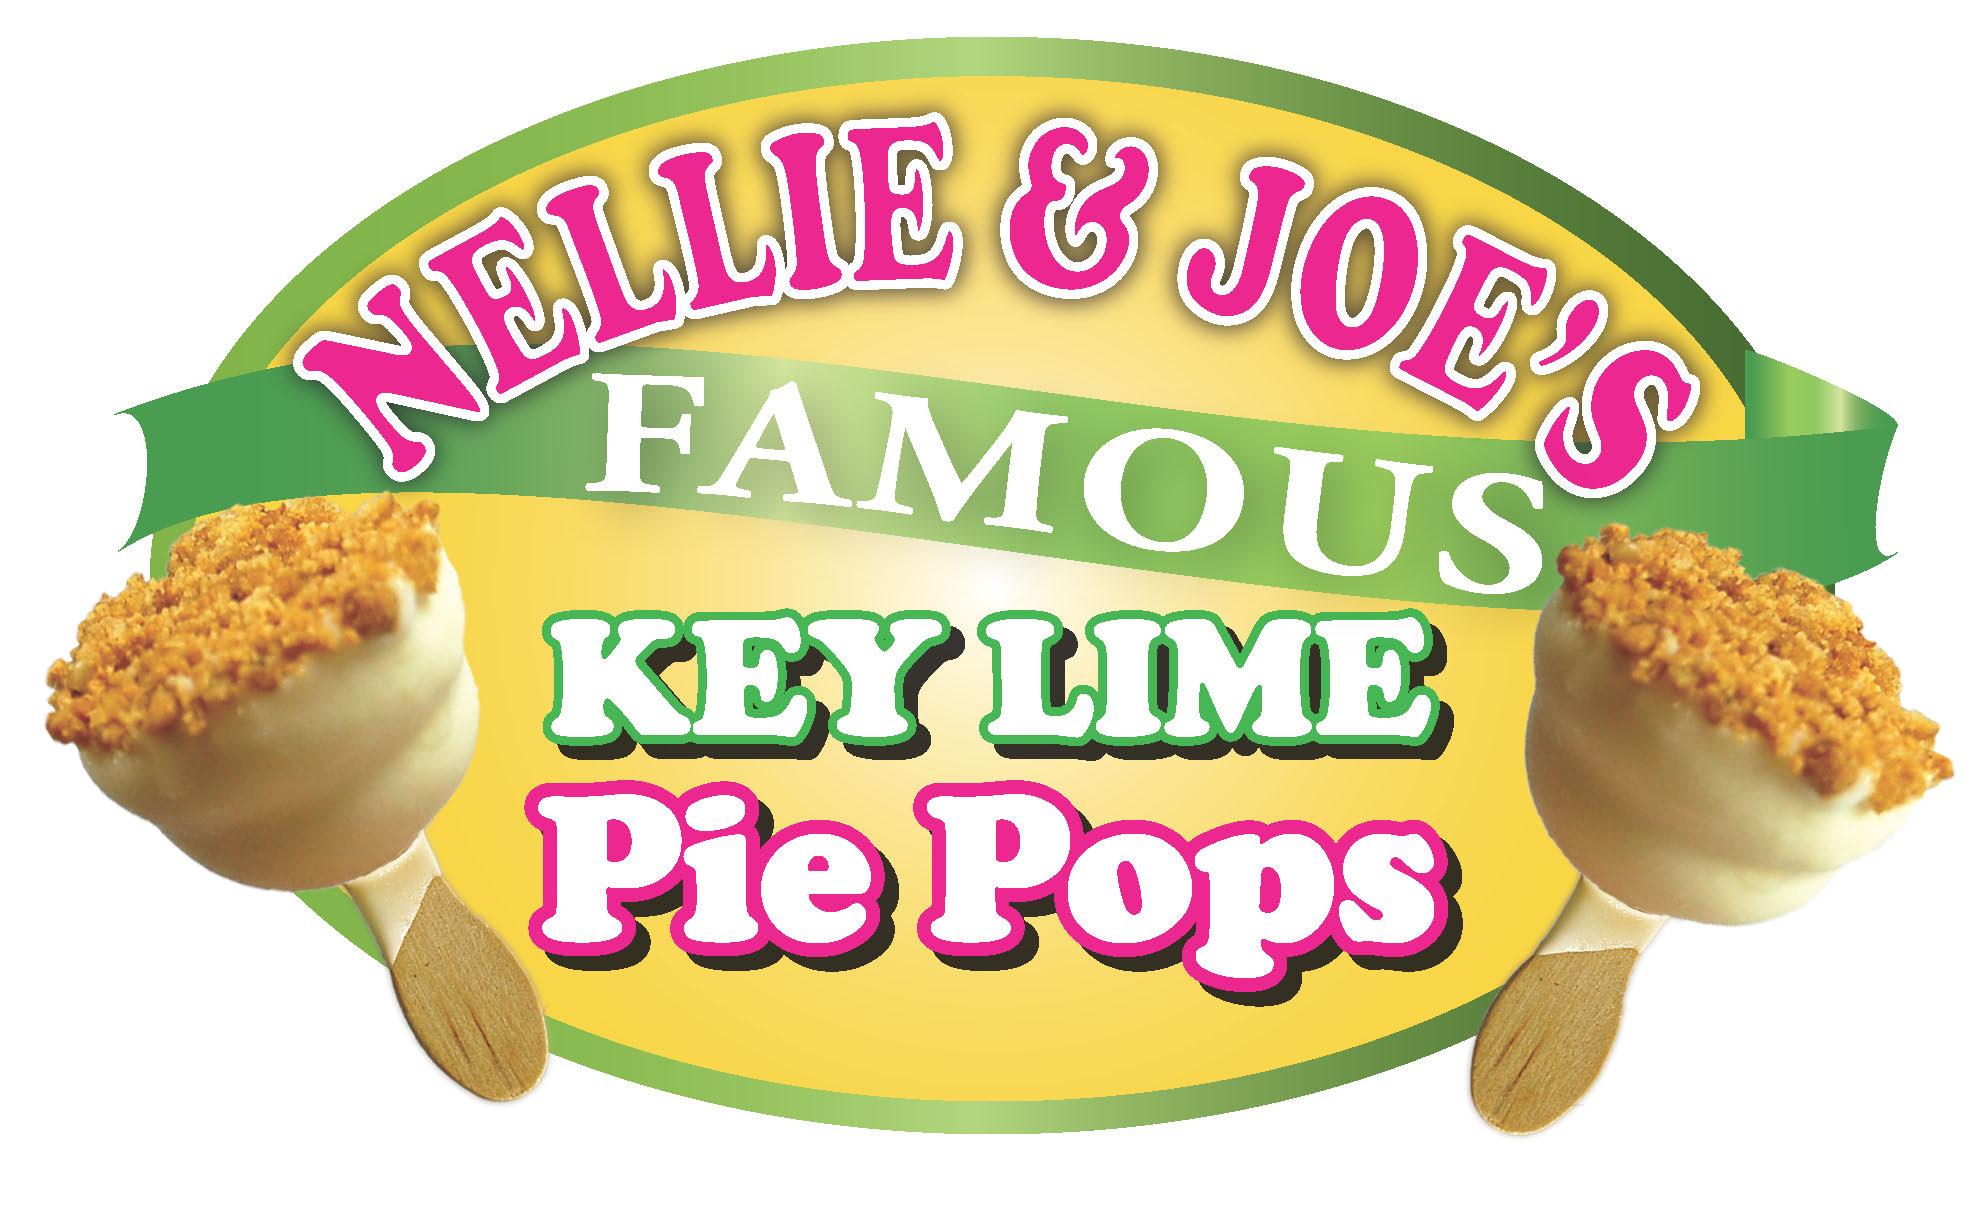 NELLIE & JOES LOGO inverted.jpg